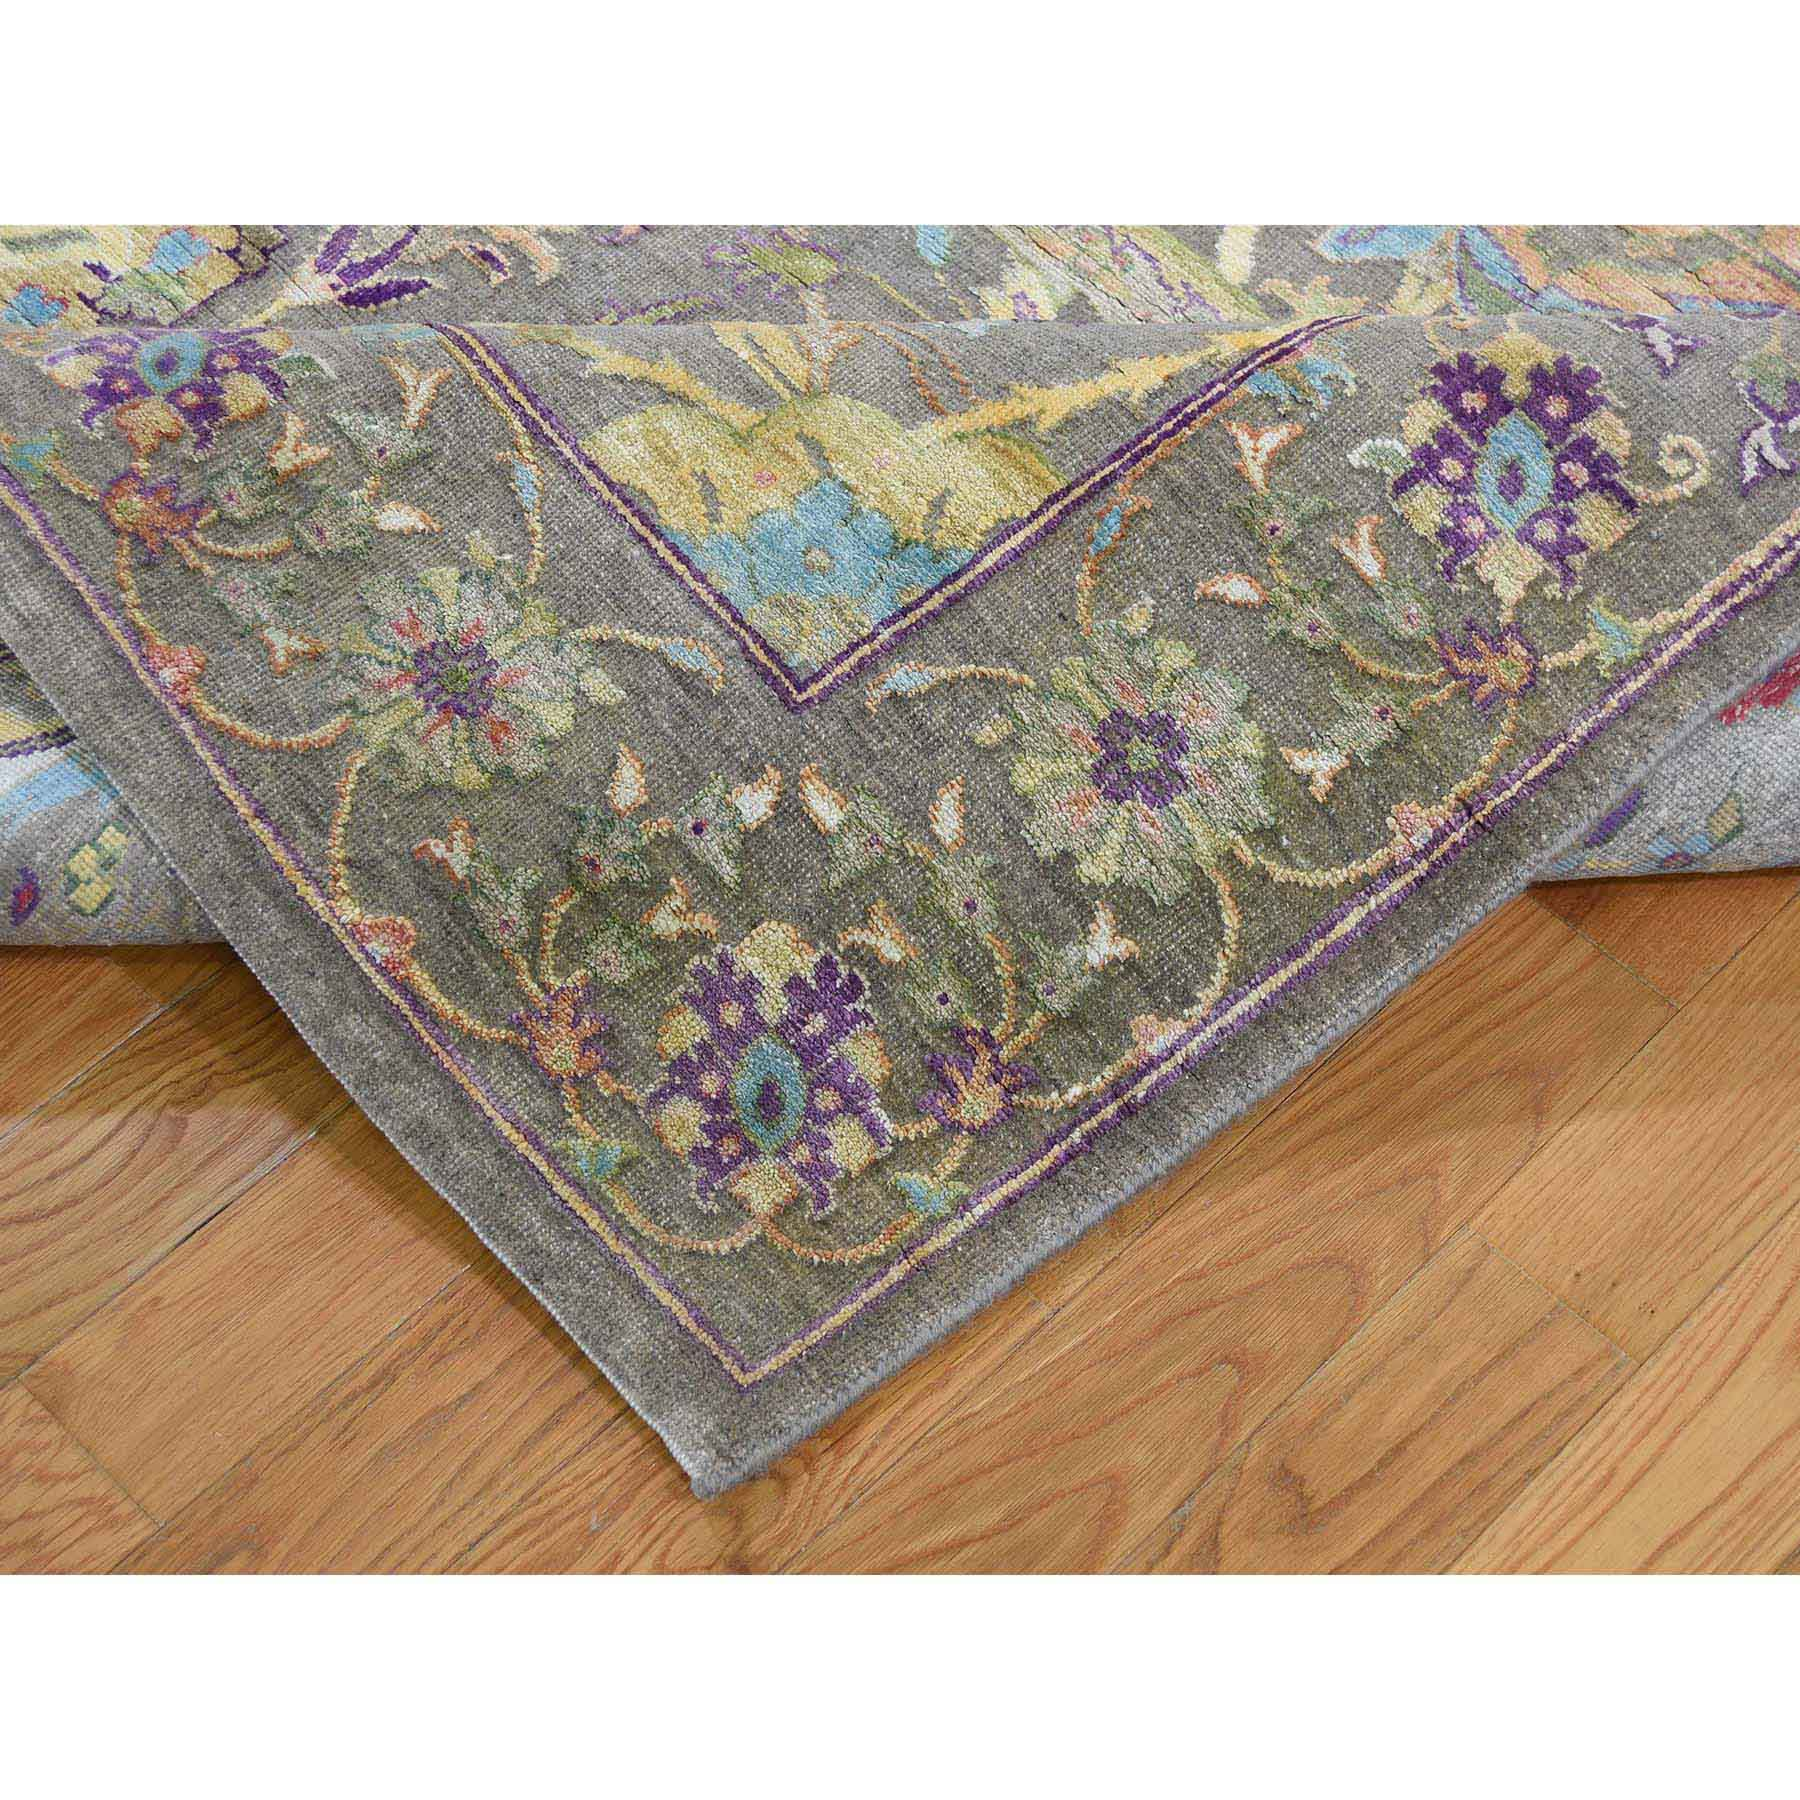 8-x10- Hand-Knotted Sickle Leaf Design Pure Silk with Oxidized Wool Oriental Rug